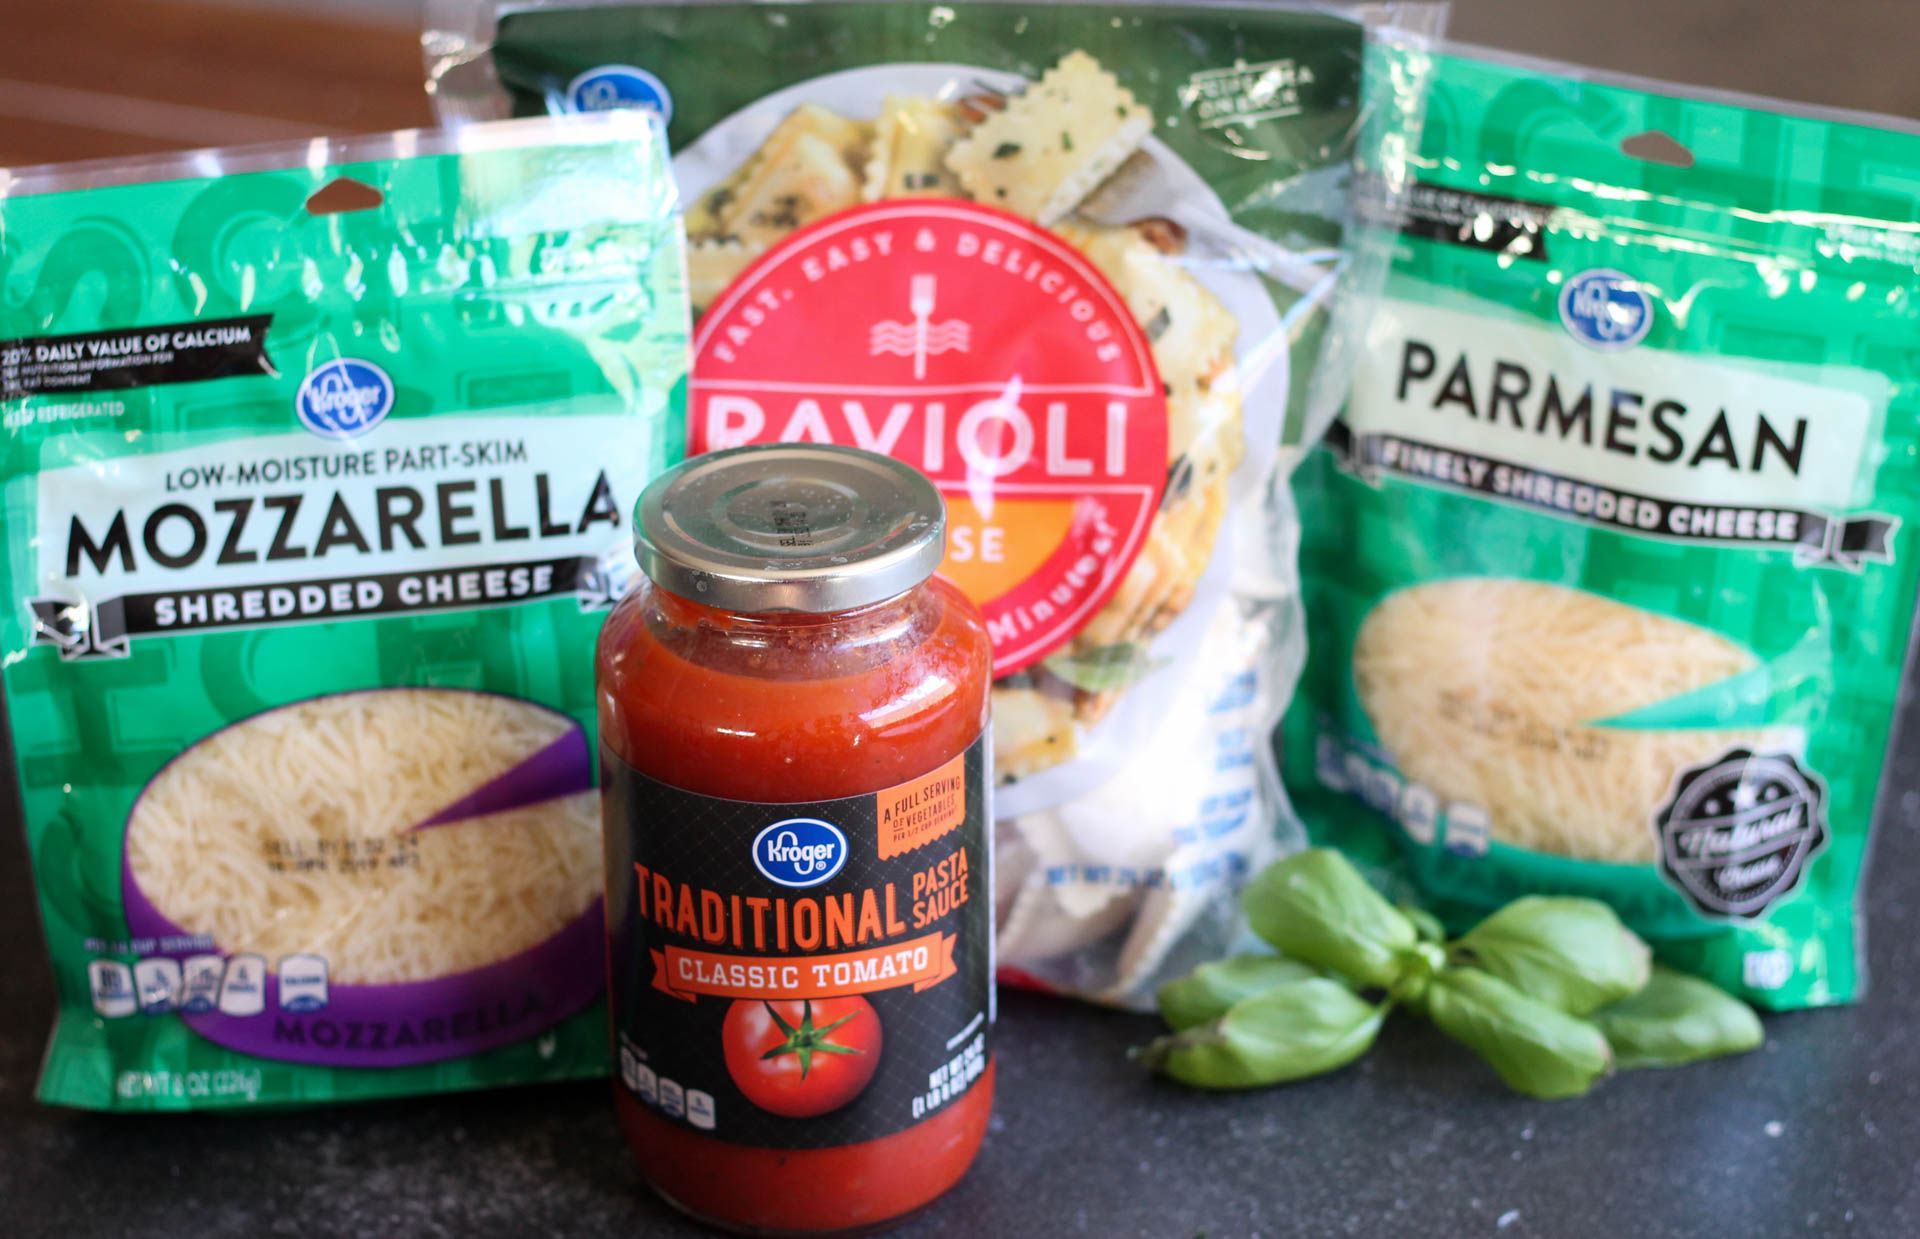 5 Ingredients in Ravioli Lasagna, cheese, sauce, and frozen ravioli